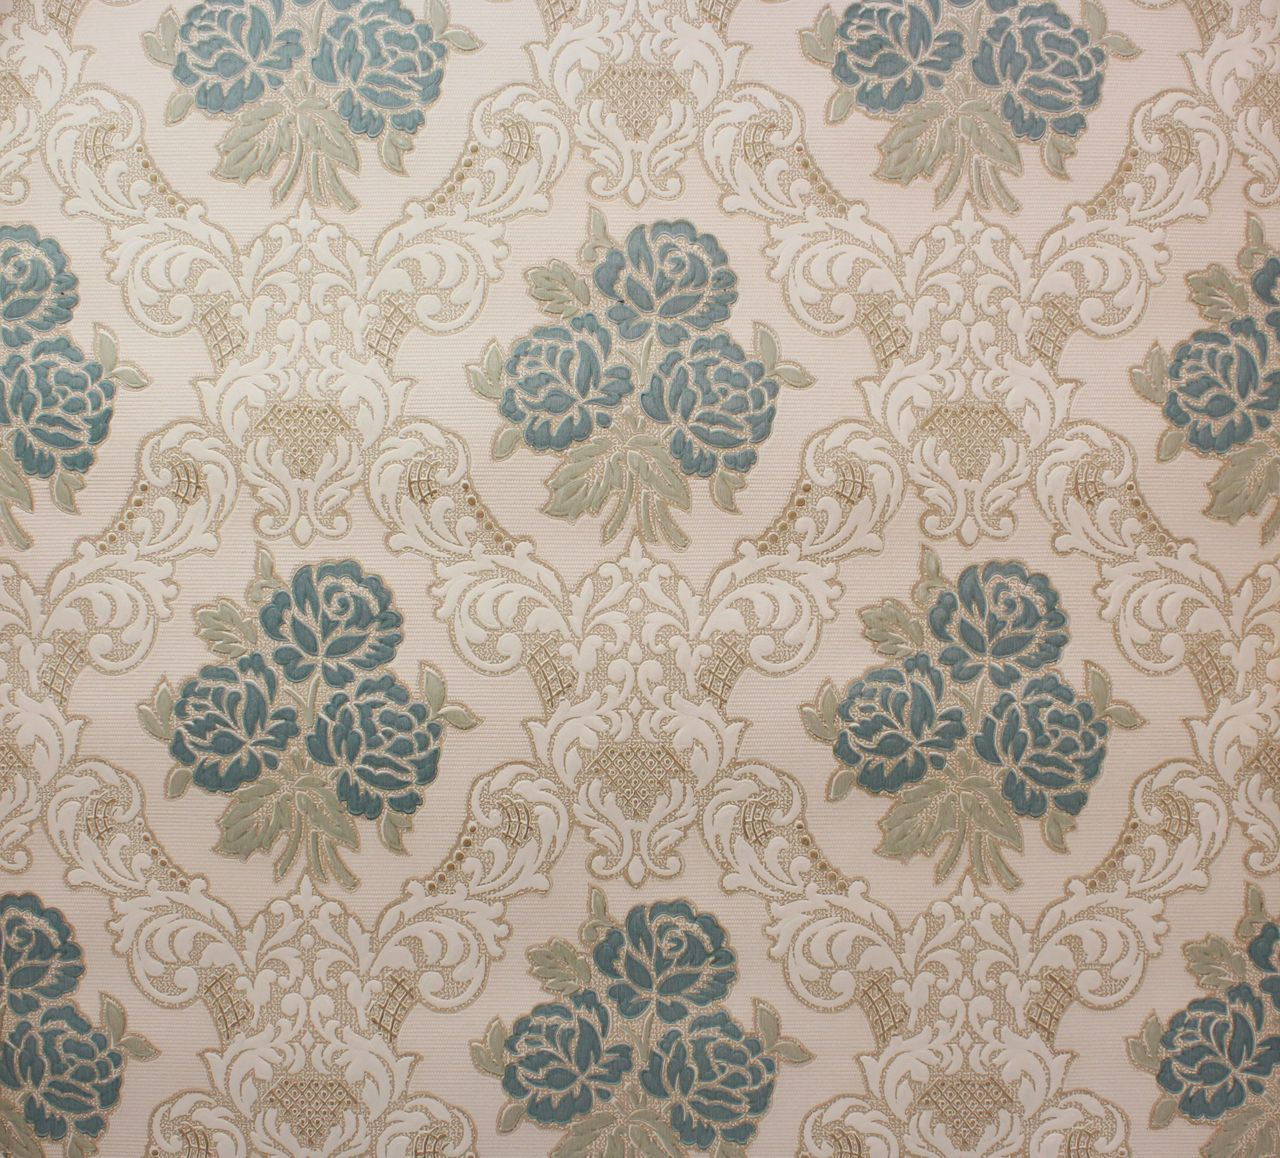 1960s Vintage Wallpaper Embossed Blue Roses Peebles